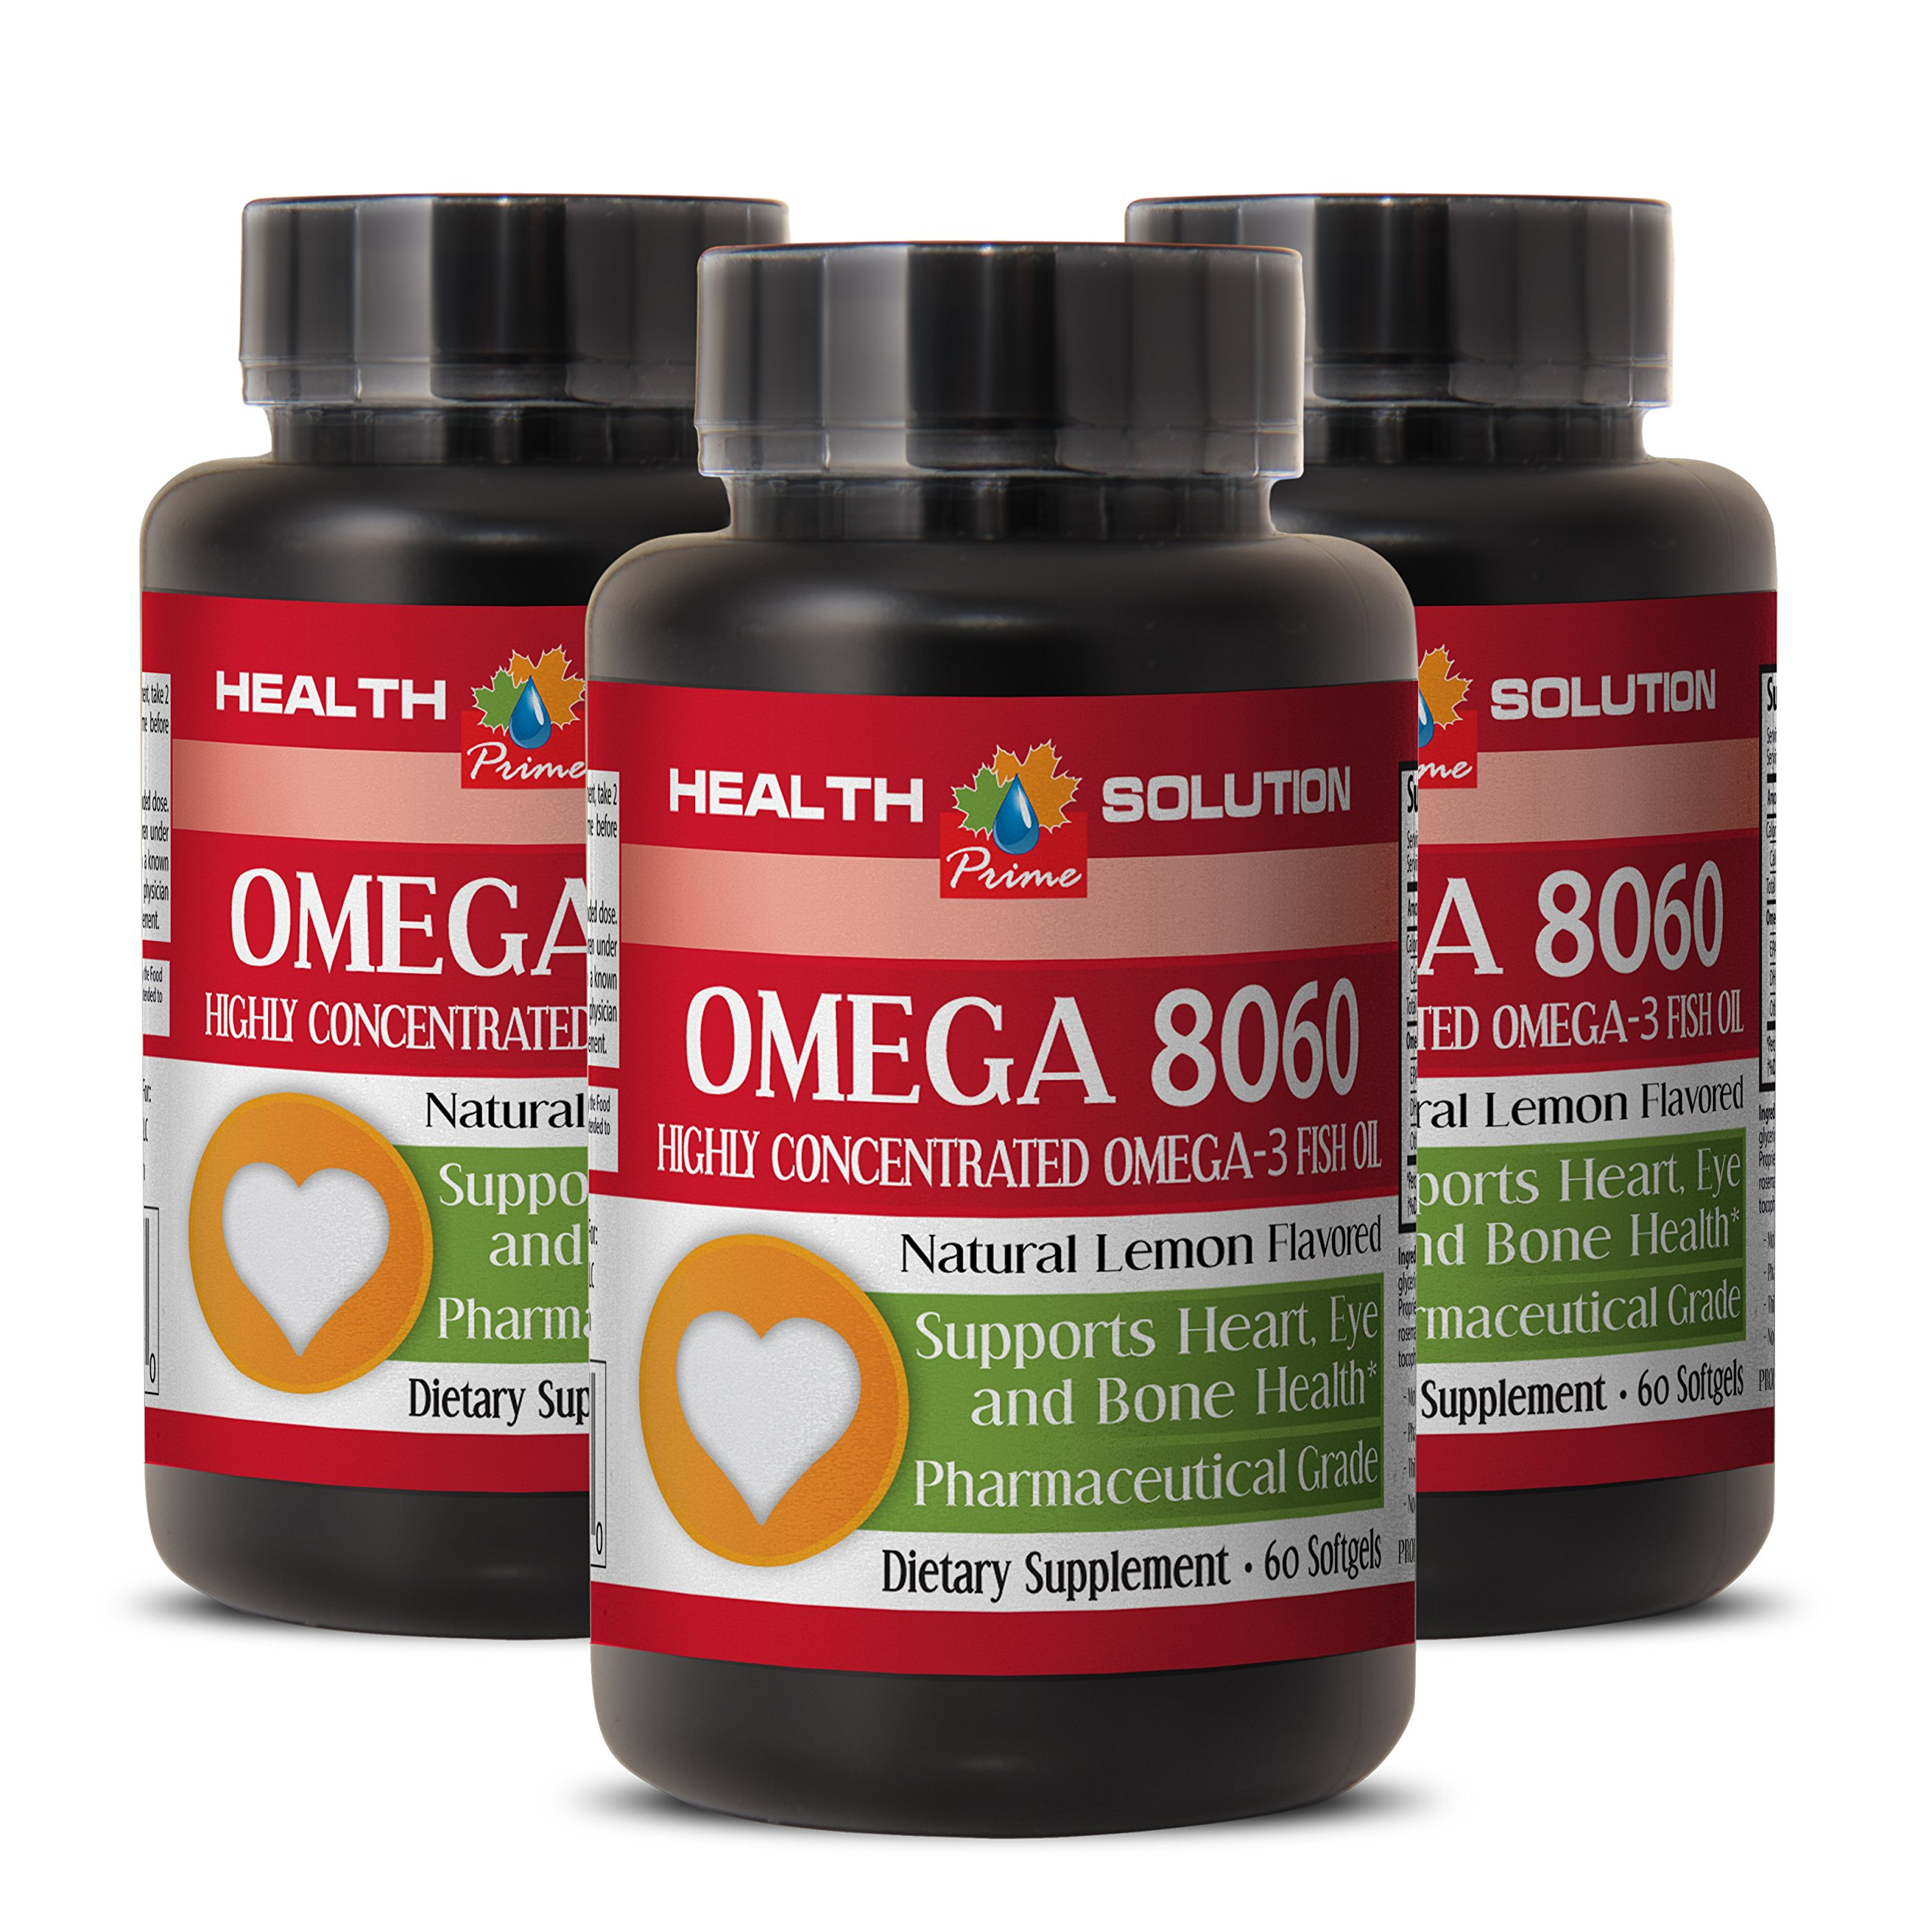 Omega 6 omega 3 omega 9 - OMEGA 8060 OMEGA-3 FATTY ACIDS - for eye health (3 Bottles) by Health Solution Prime